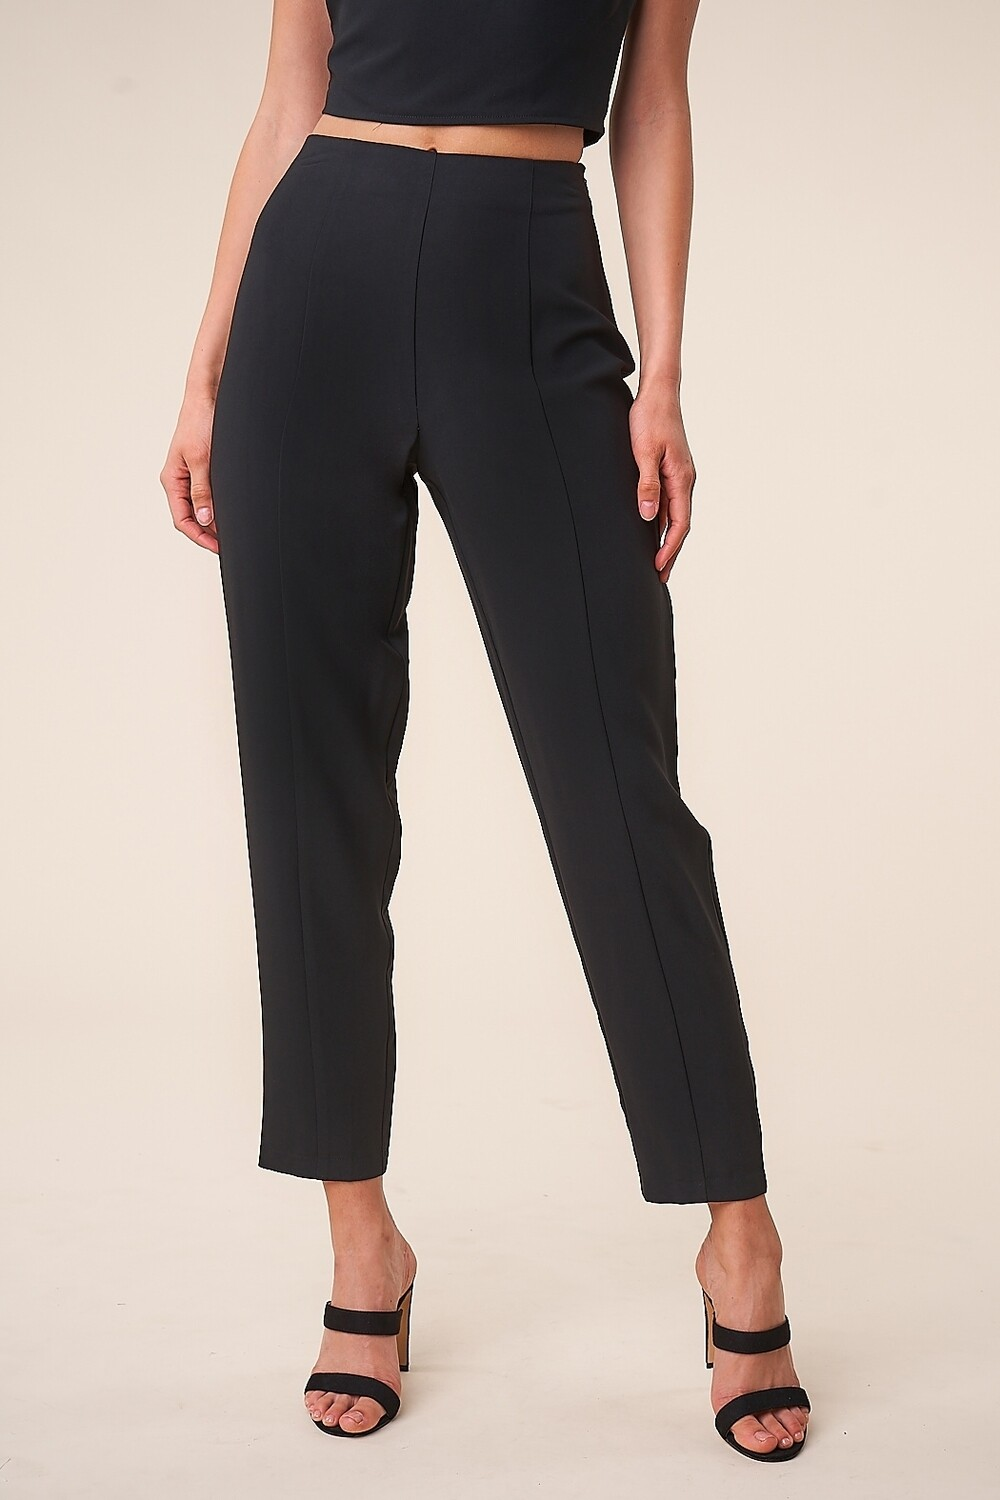 Black High Waisted Tapered Pants